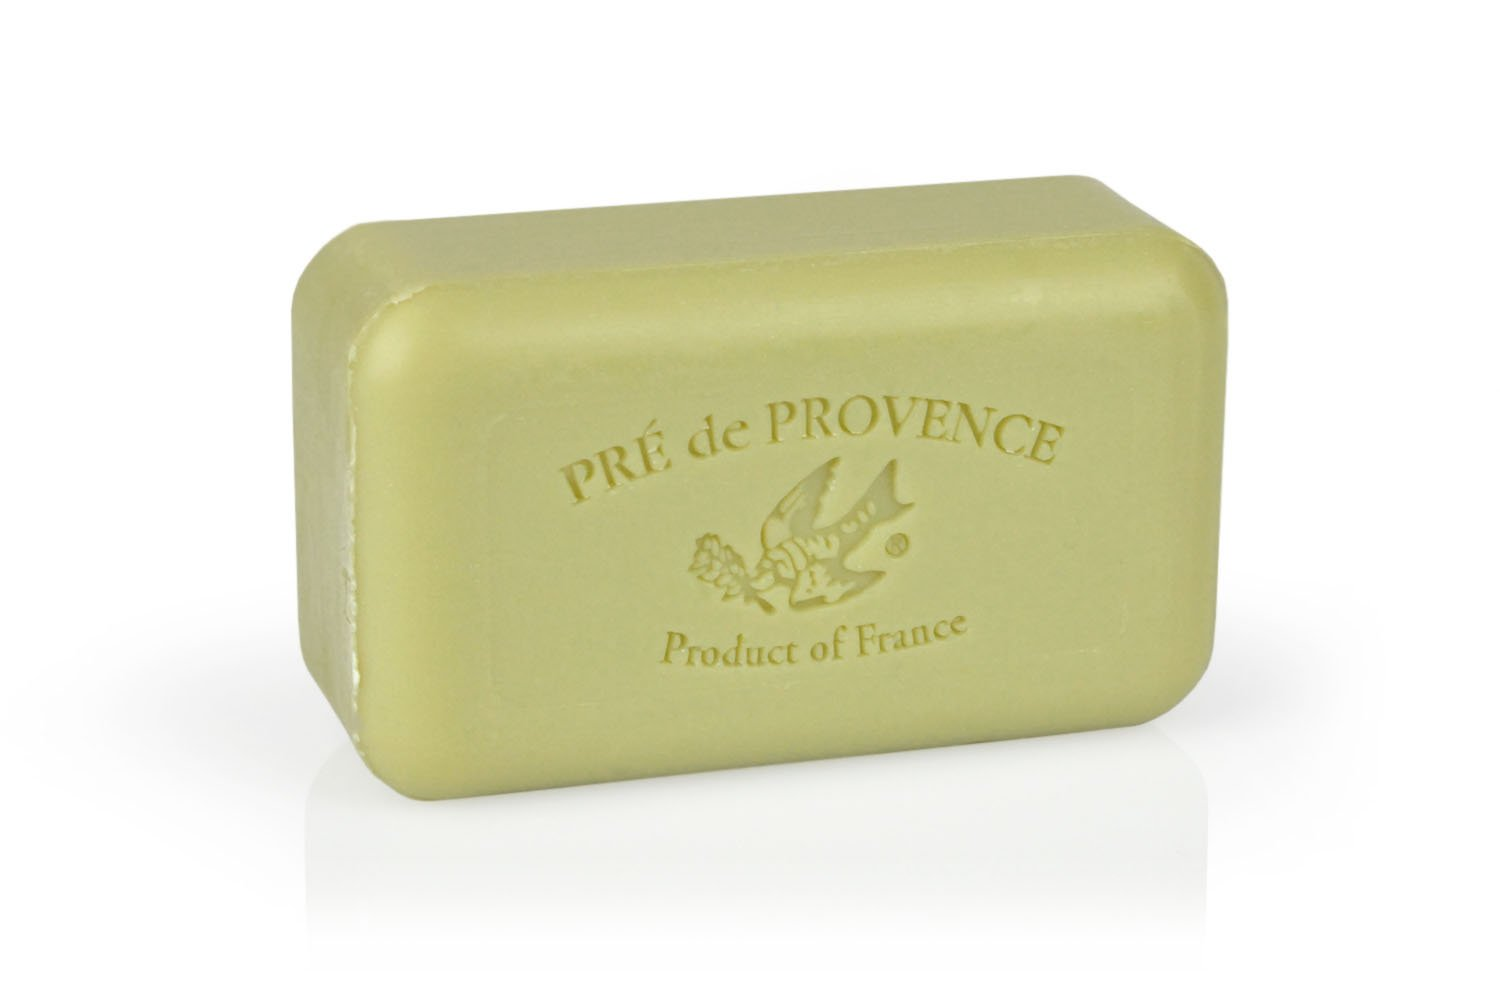 Pre de Provence Shea Butter Enriched Artisanal French Soap Bar (150 g) - Verbena 35159VE